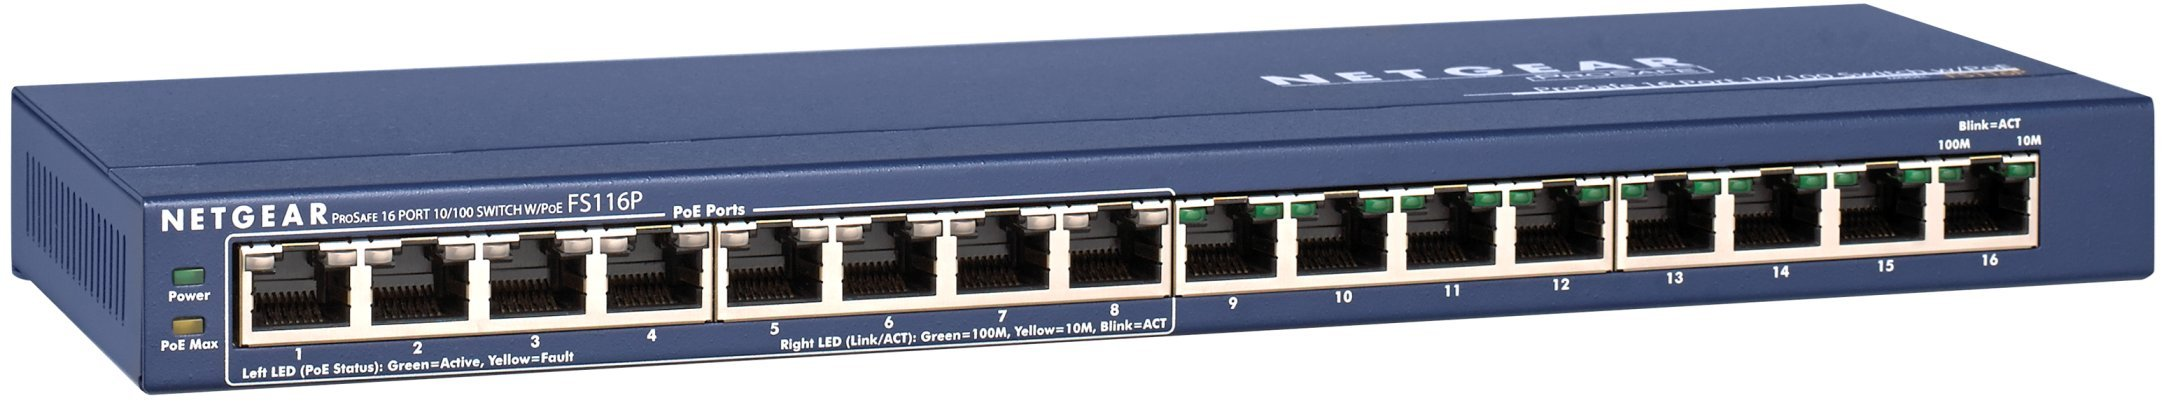 NETGEAR 16-Port Fast Ethernet 10/100 Unmanaged PoE Switch (FS116PNA) - with 8 x PoE @ 70W, Desktop, and ProSAFE Limited Lifetime Protection by NETGEAR